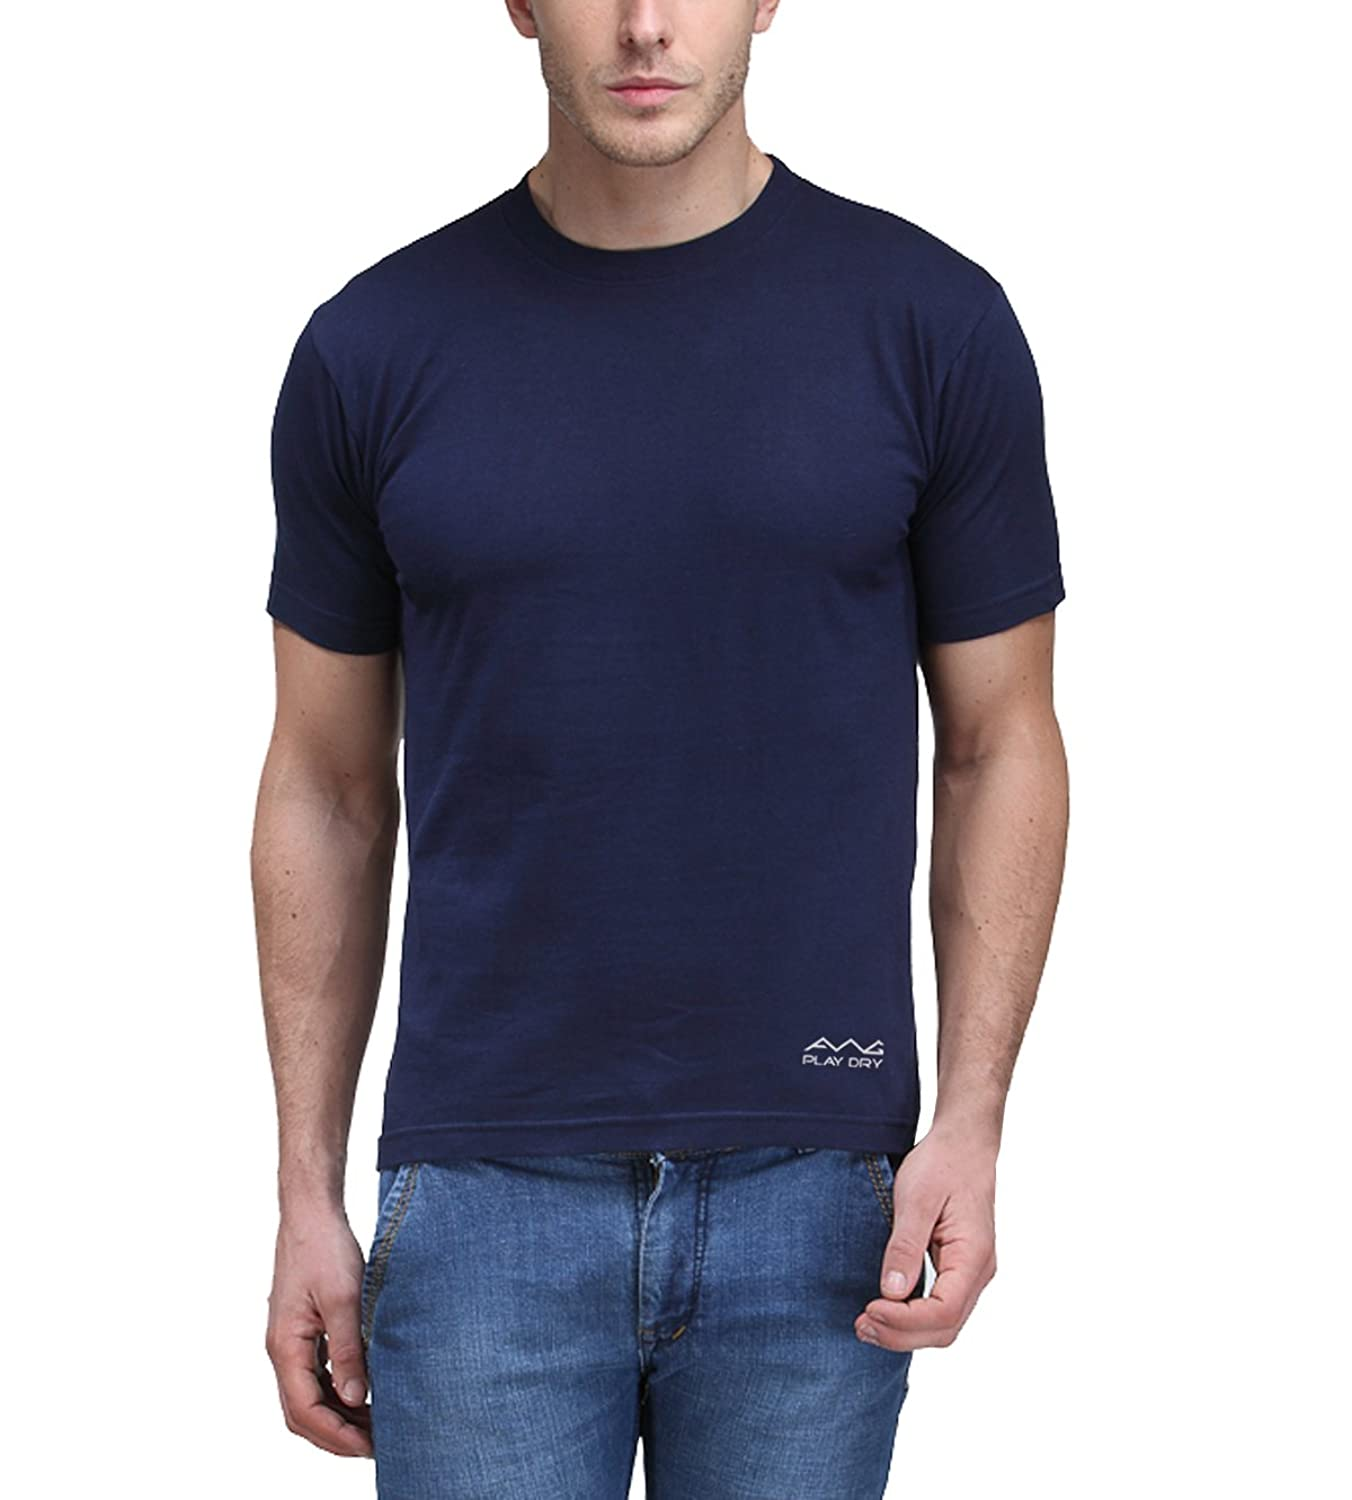 Amazon Fashion Style Bash (24-25 March) – 30%-70% Off On Everything By Amazon | Scott International Men's Jersey Round Neck Dryfit Polyester T-Shirt - Navy Blue @ Rs.249